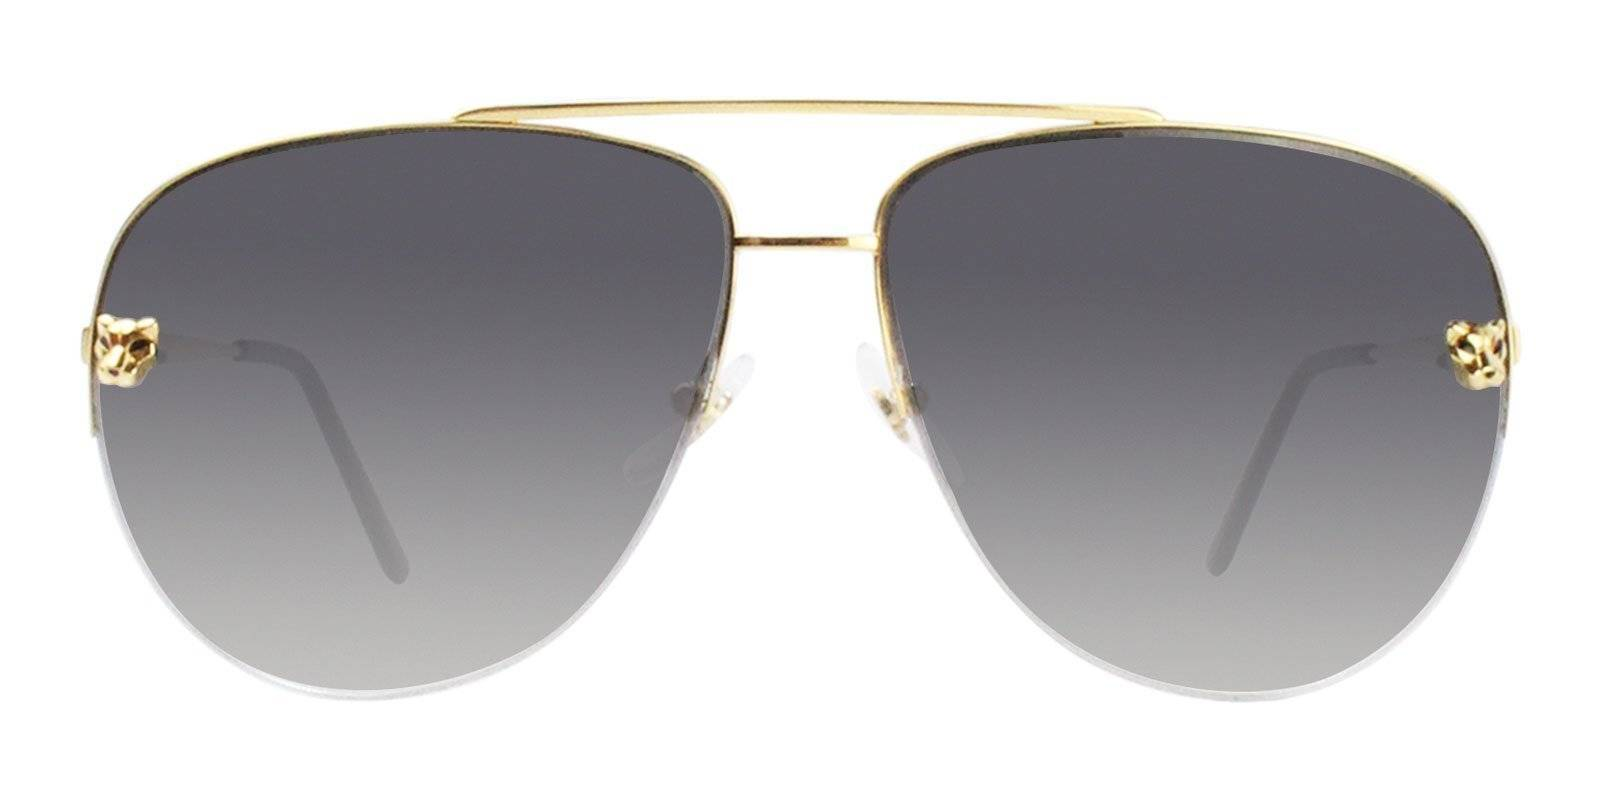 0d1ca5b790 Top 10 Cartier Sunglasses Gift Ideas for him and her– Designer Eyes